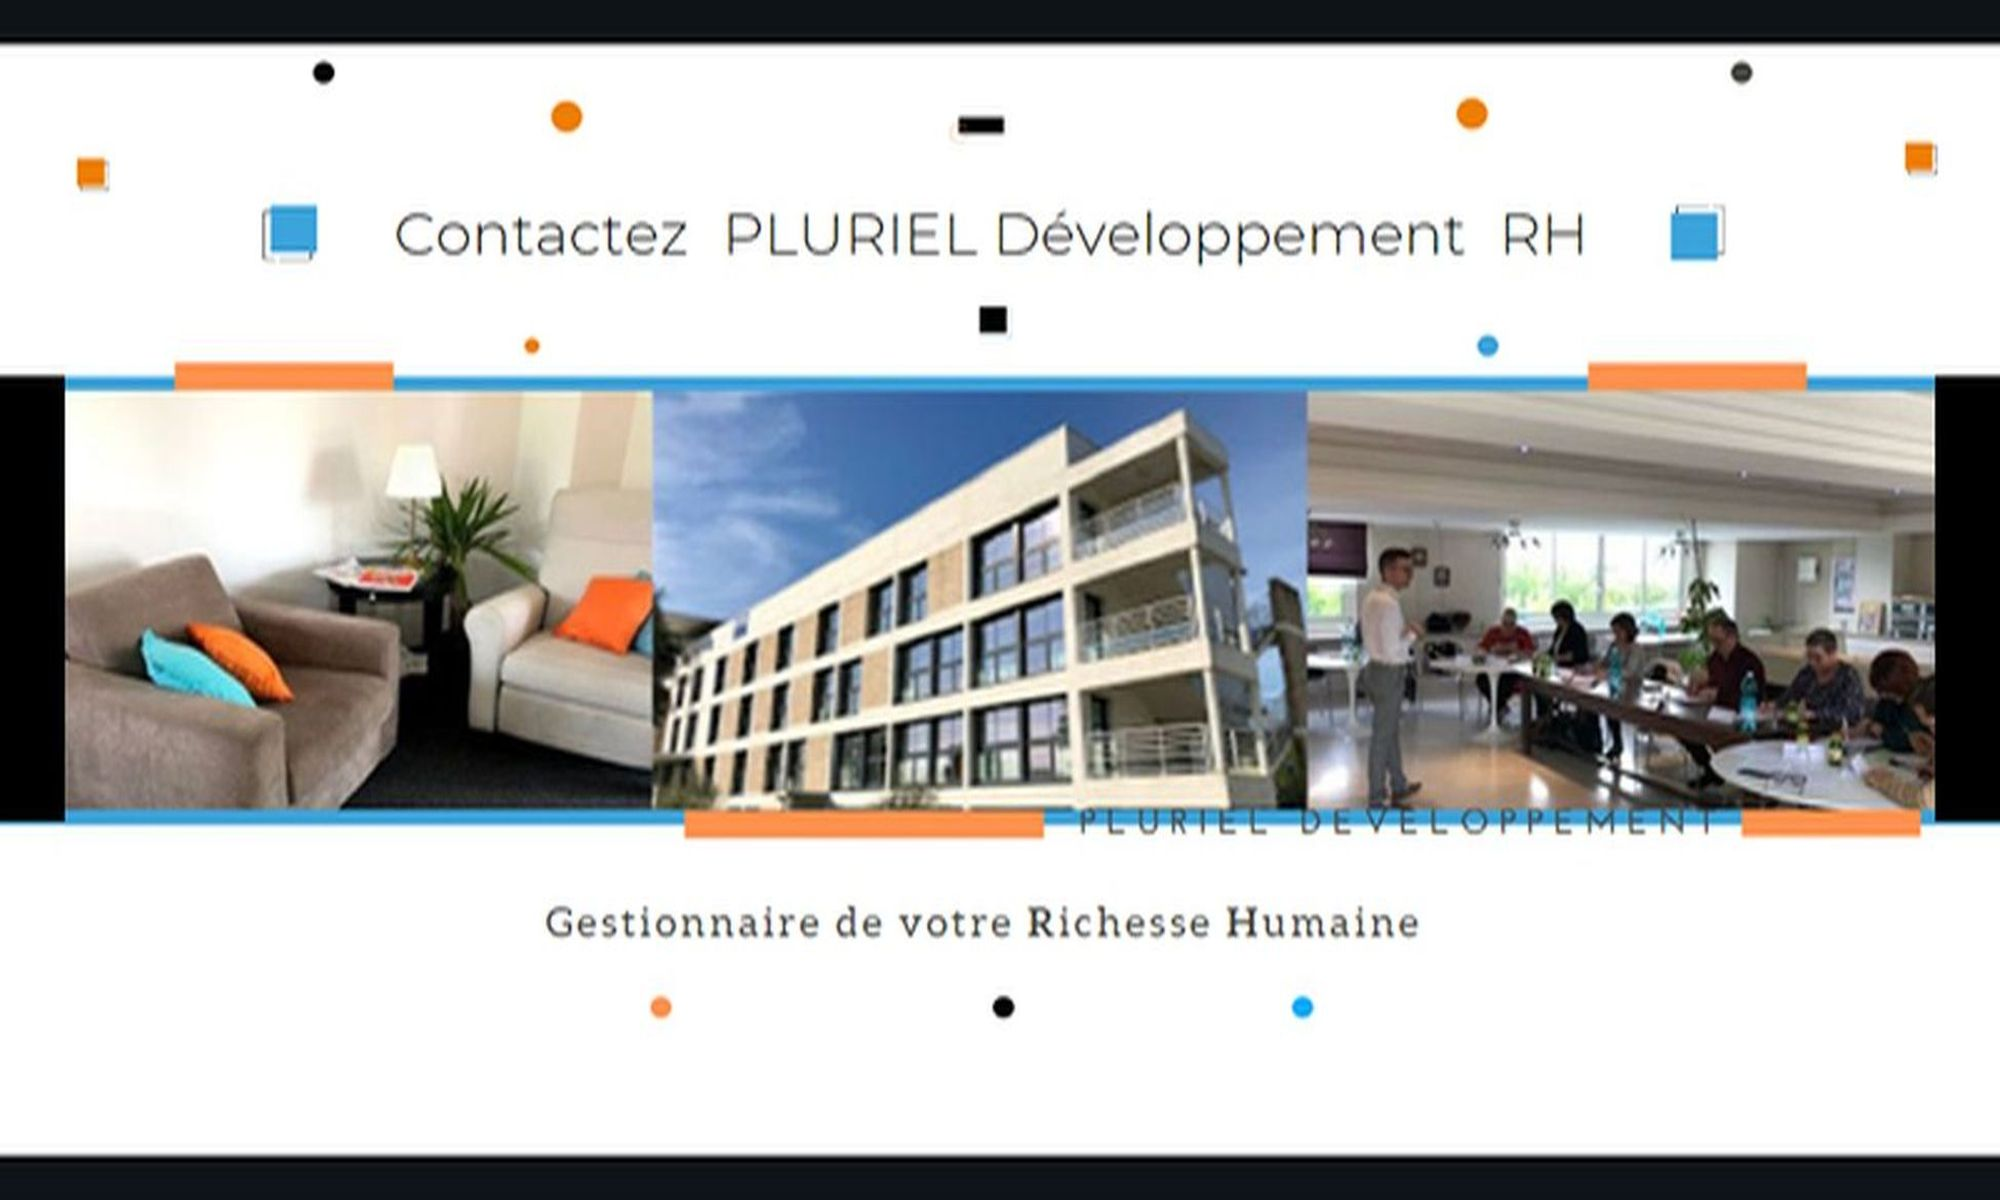 contact-RH-pluriel-developpement